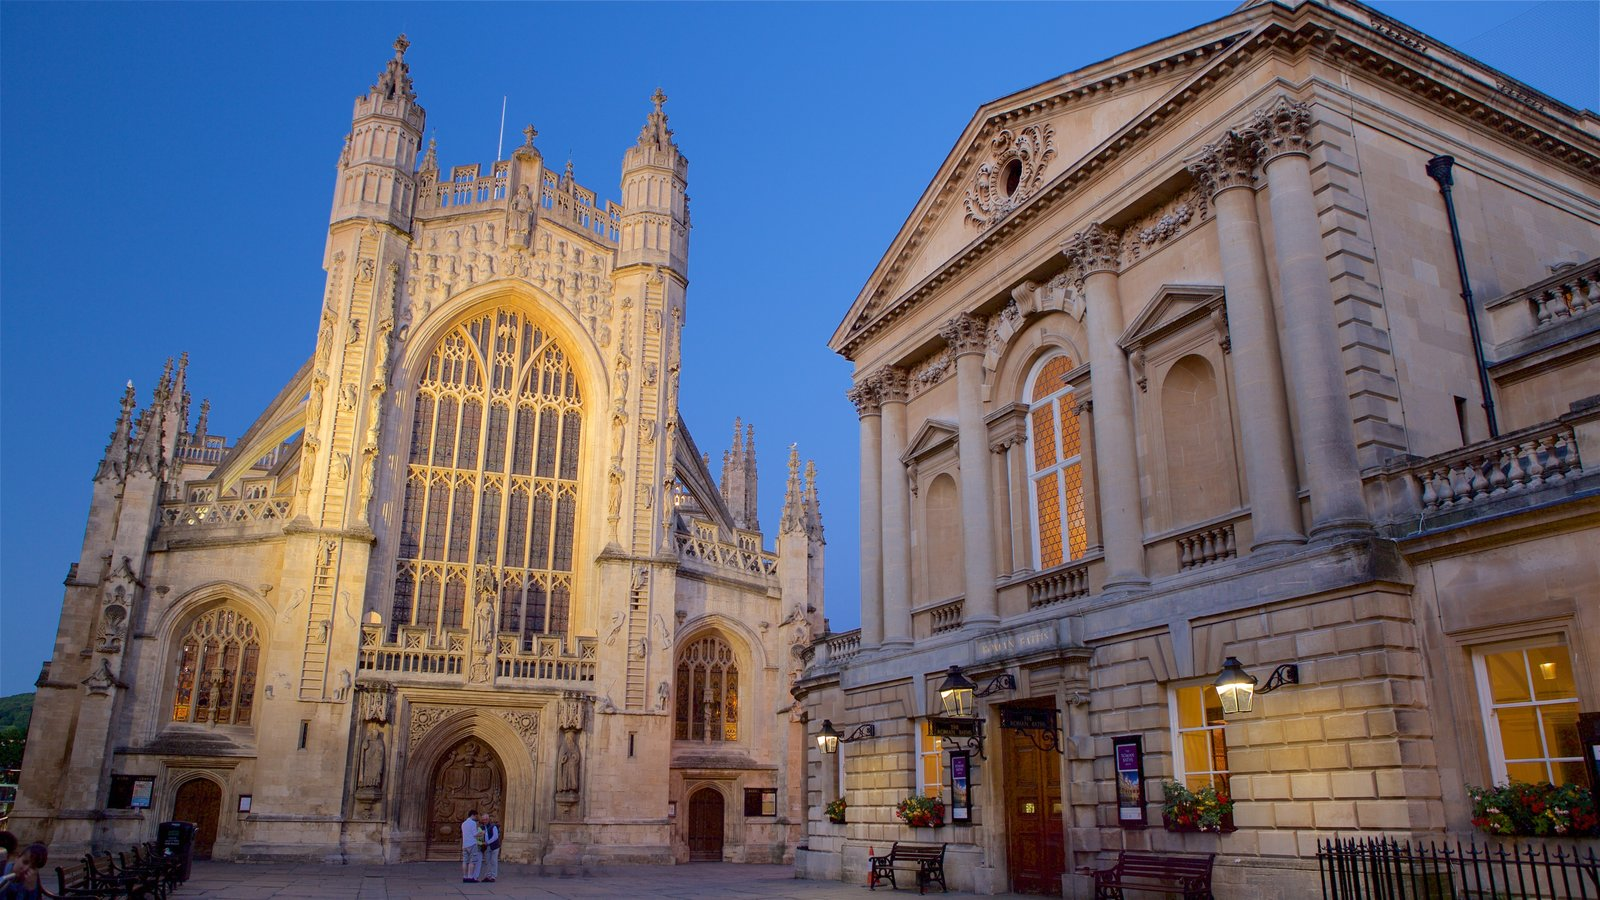 Bath Abbey featuring heritage architecture, a church or cathedral and a square or plaza